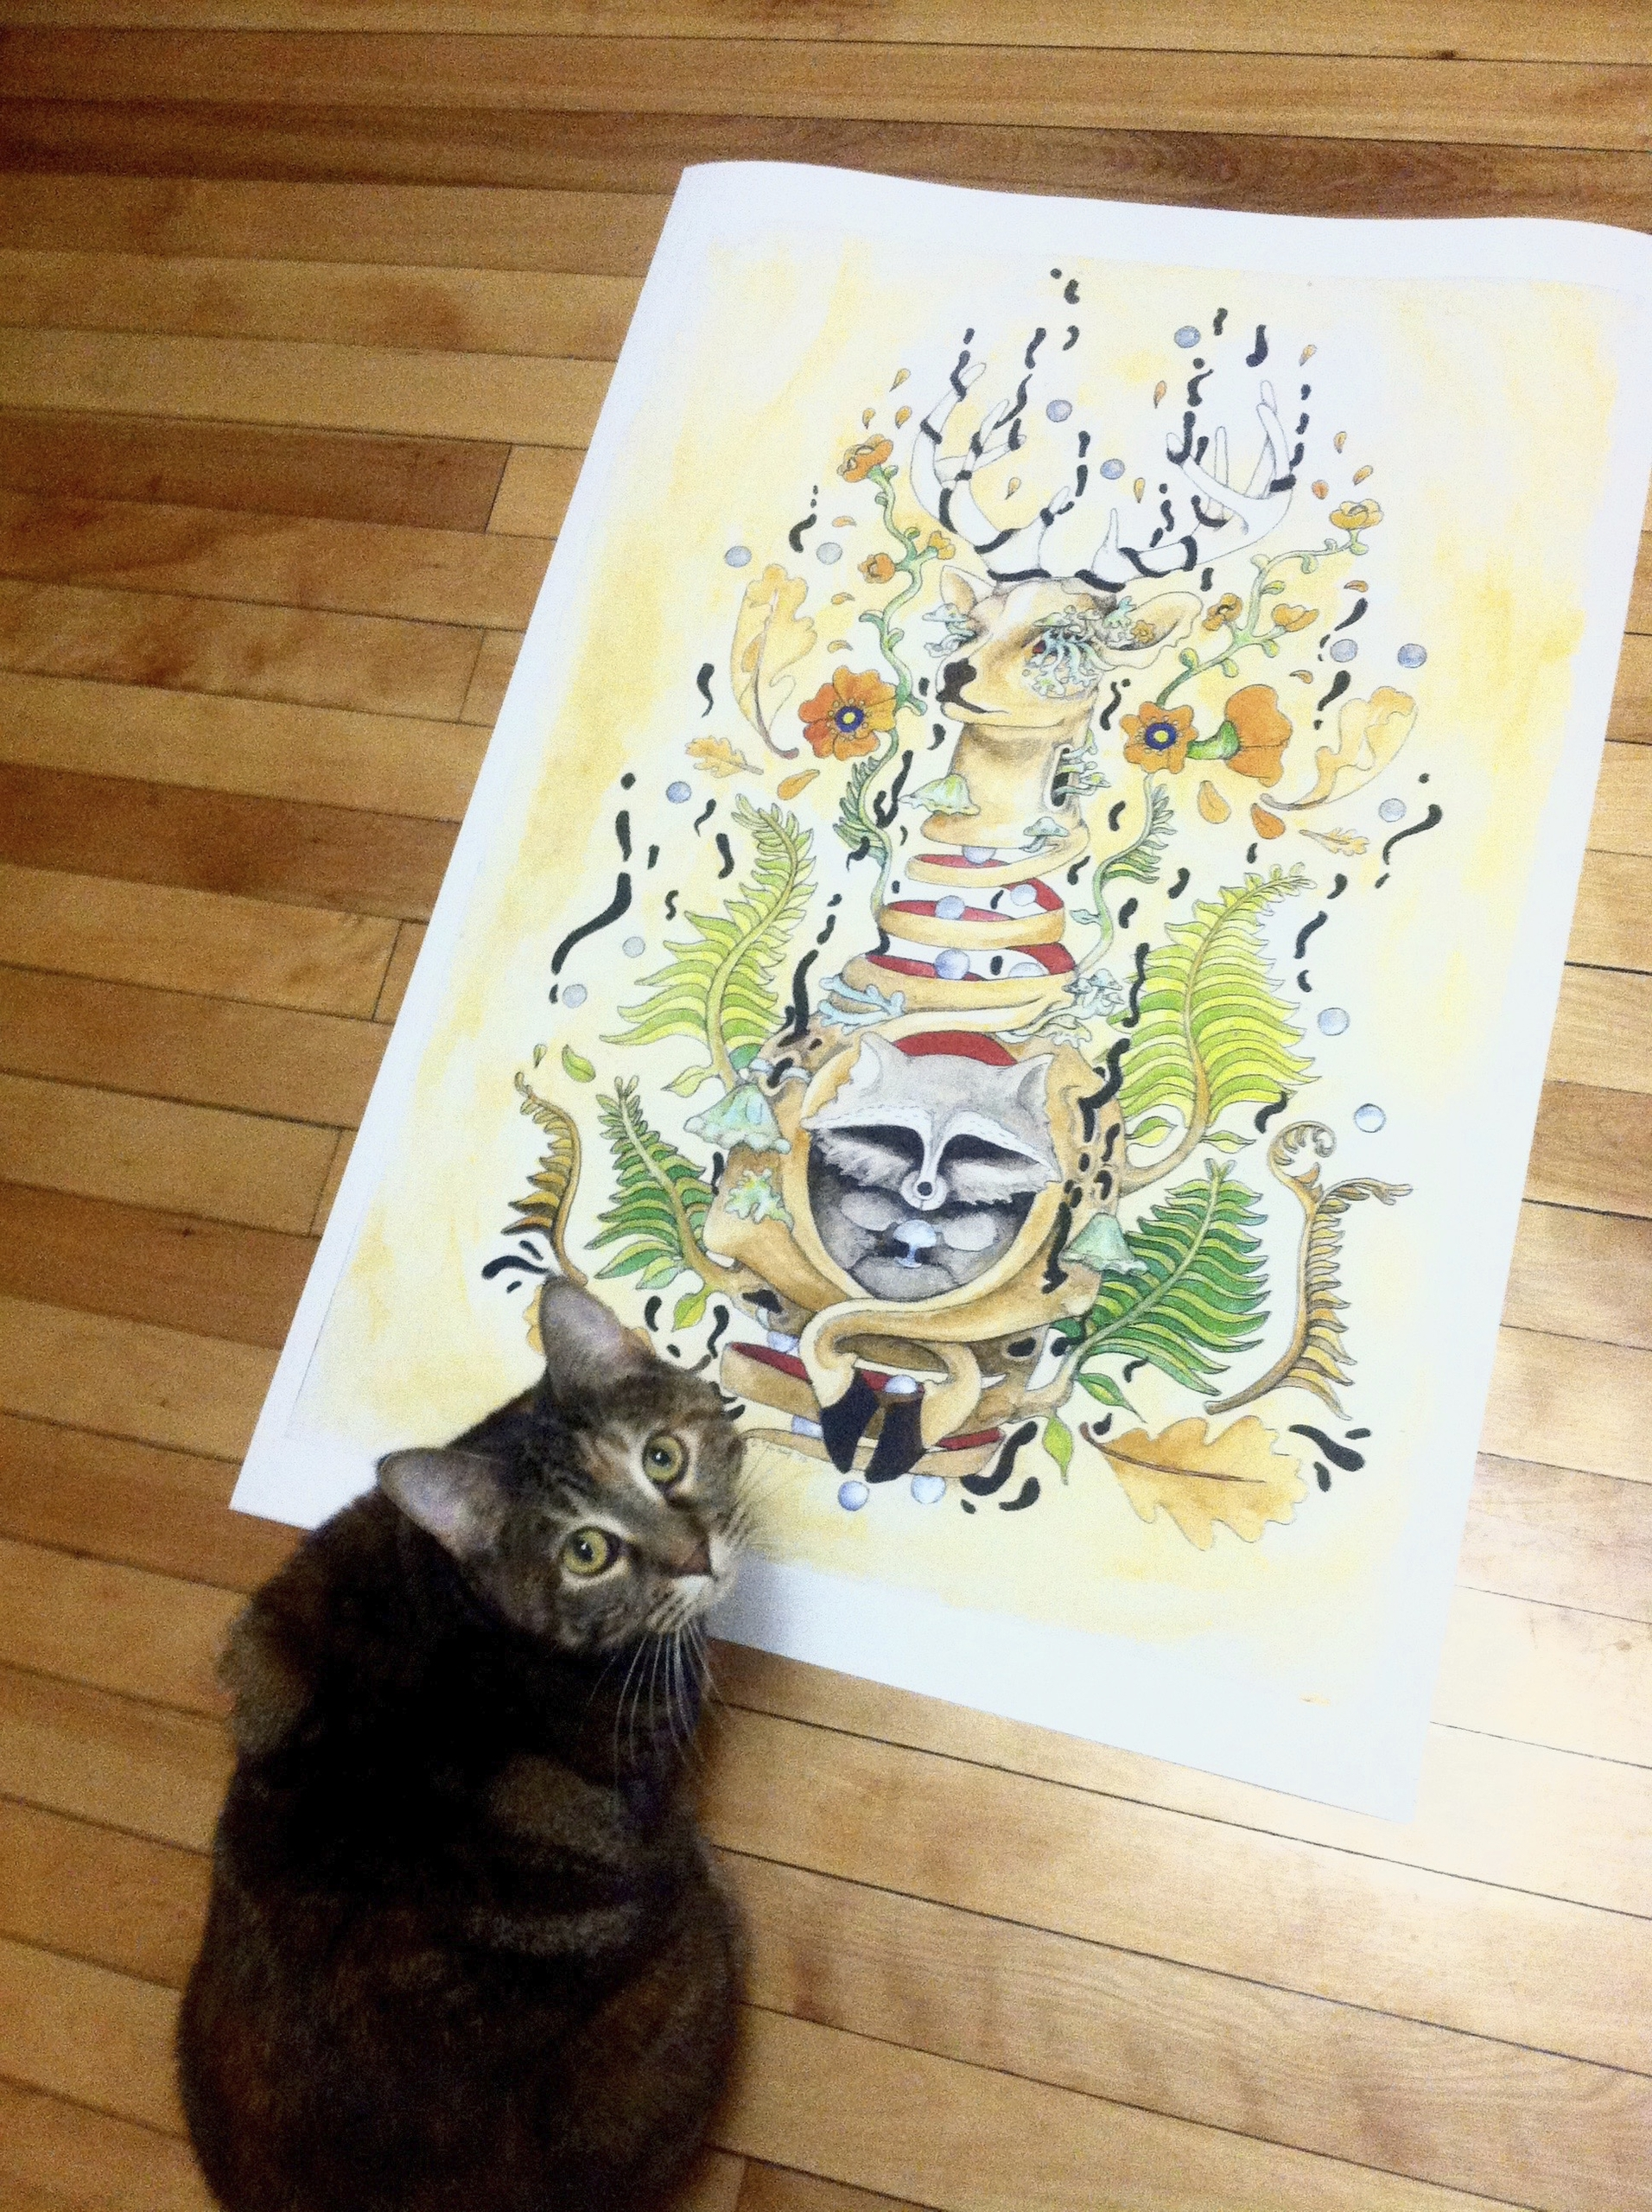 Georgie proofin' work. cats big - opodesign | ello